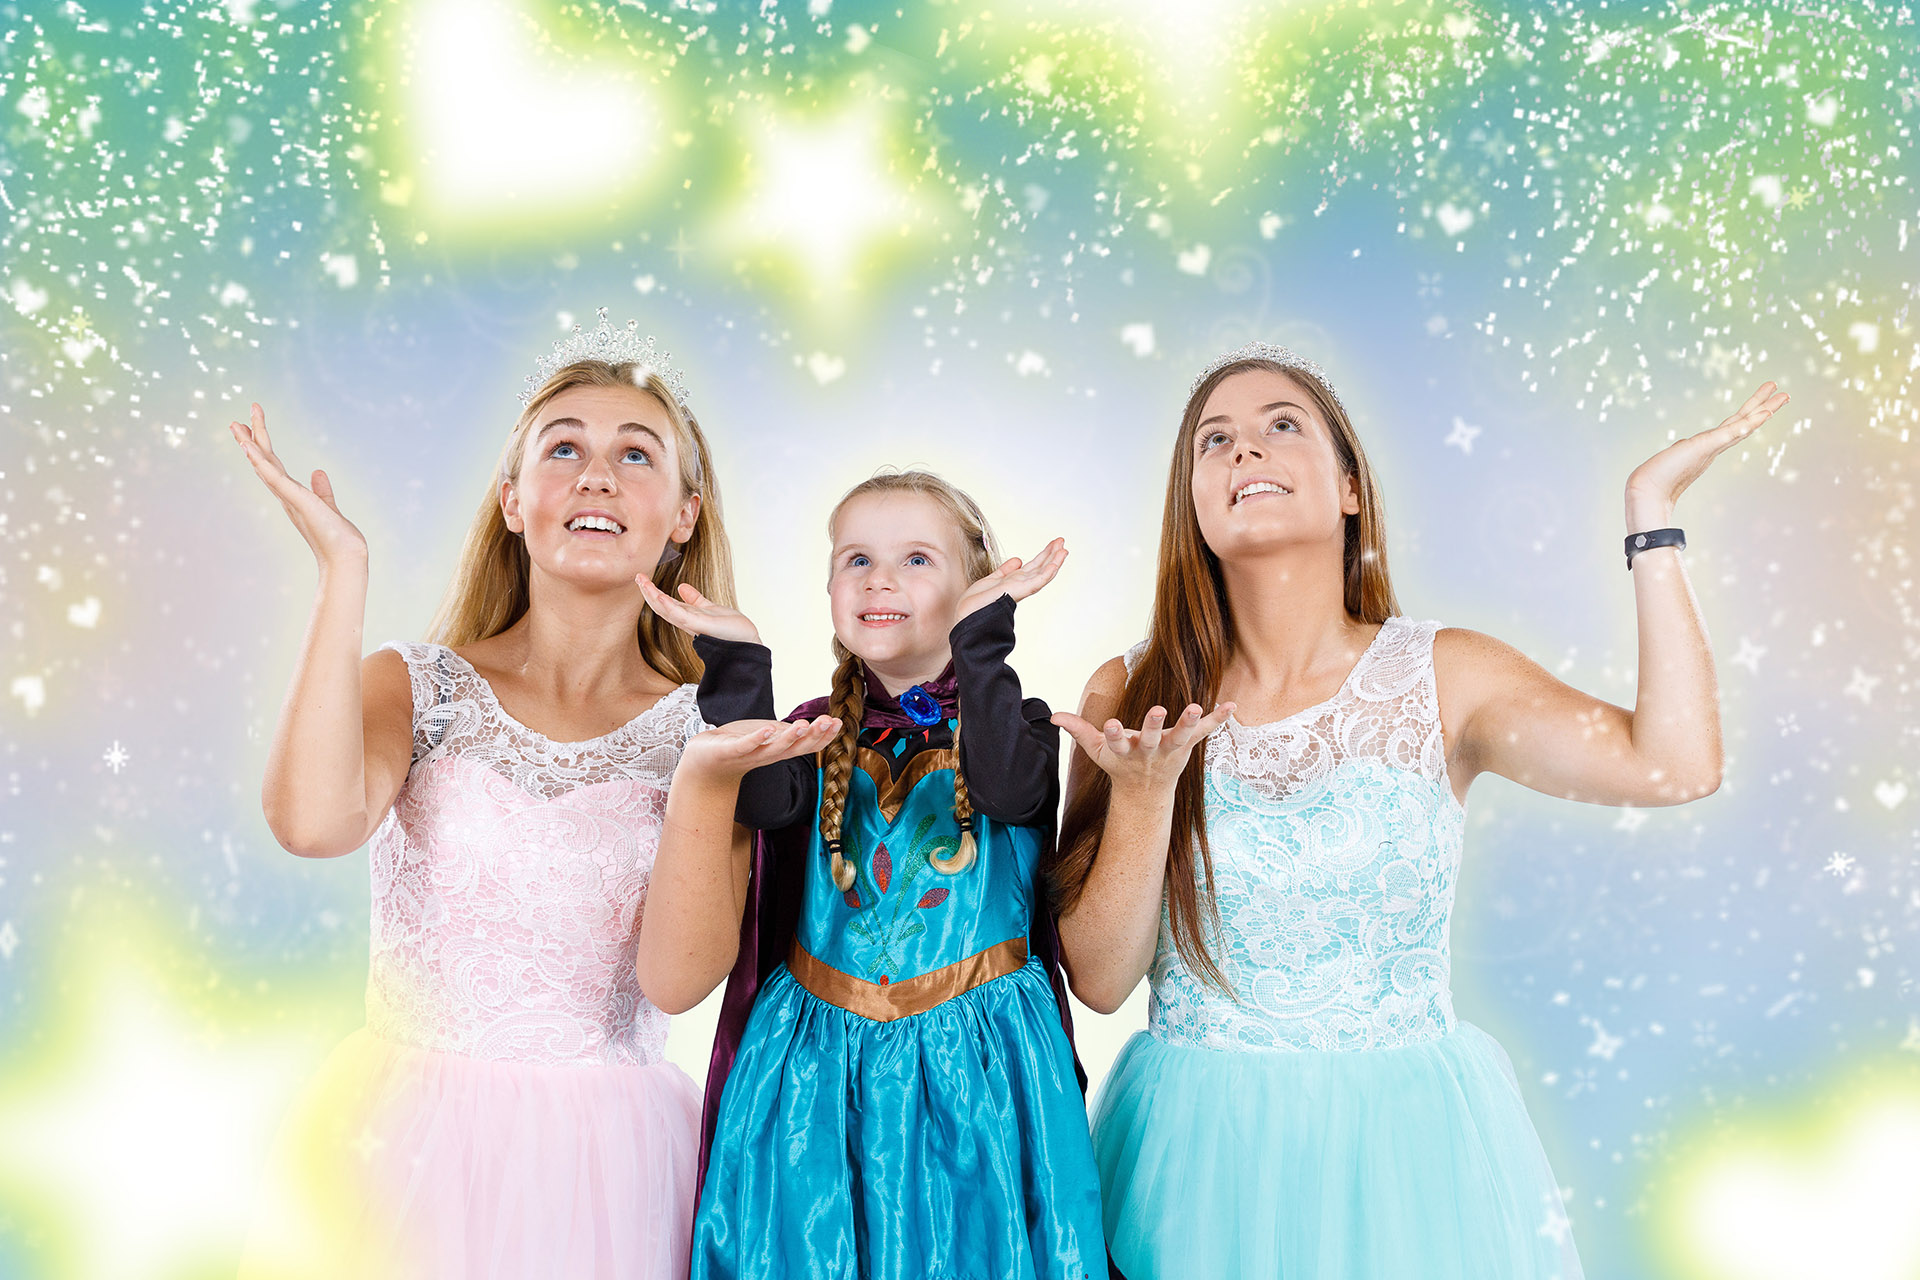 princess-the-party-girl-world-kids-children-s-birthday-parties-face-painting-events-shopping-centre-activations-workshops-games-balloon-scultping-entertainer-entertainment-perth-canberra-melbourne-geelong-surfcoast-brisbane-gold-coast-nsw-vic-qld-wa-act-australia